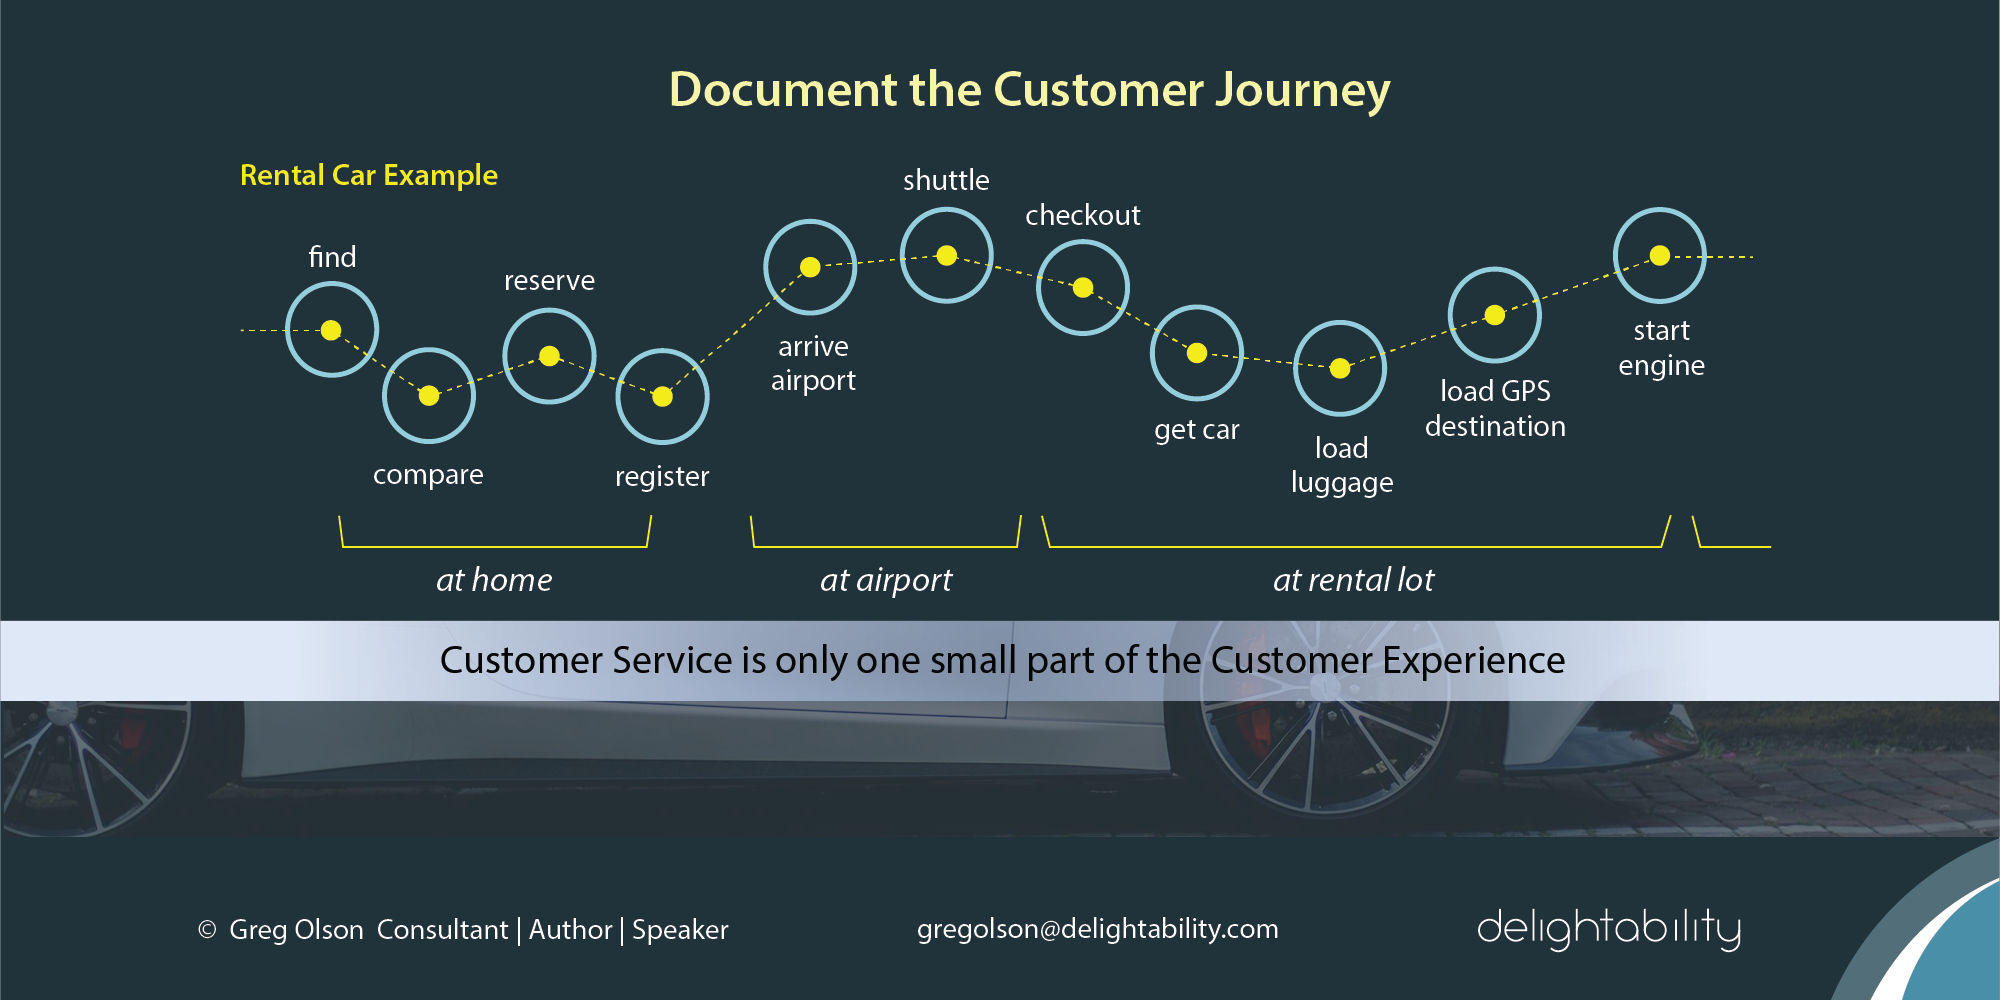 image of customer journey map - car rental example - from Delightability and The Experience Design Blueprint